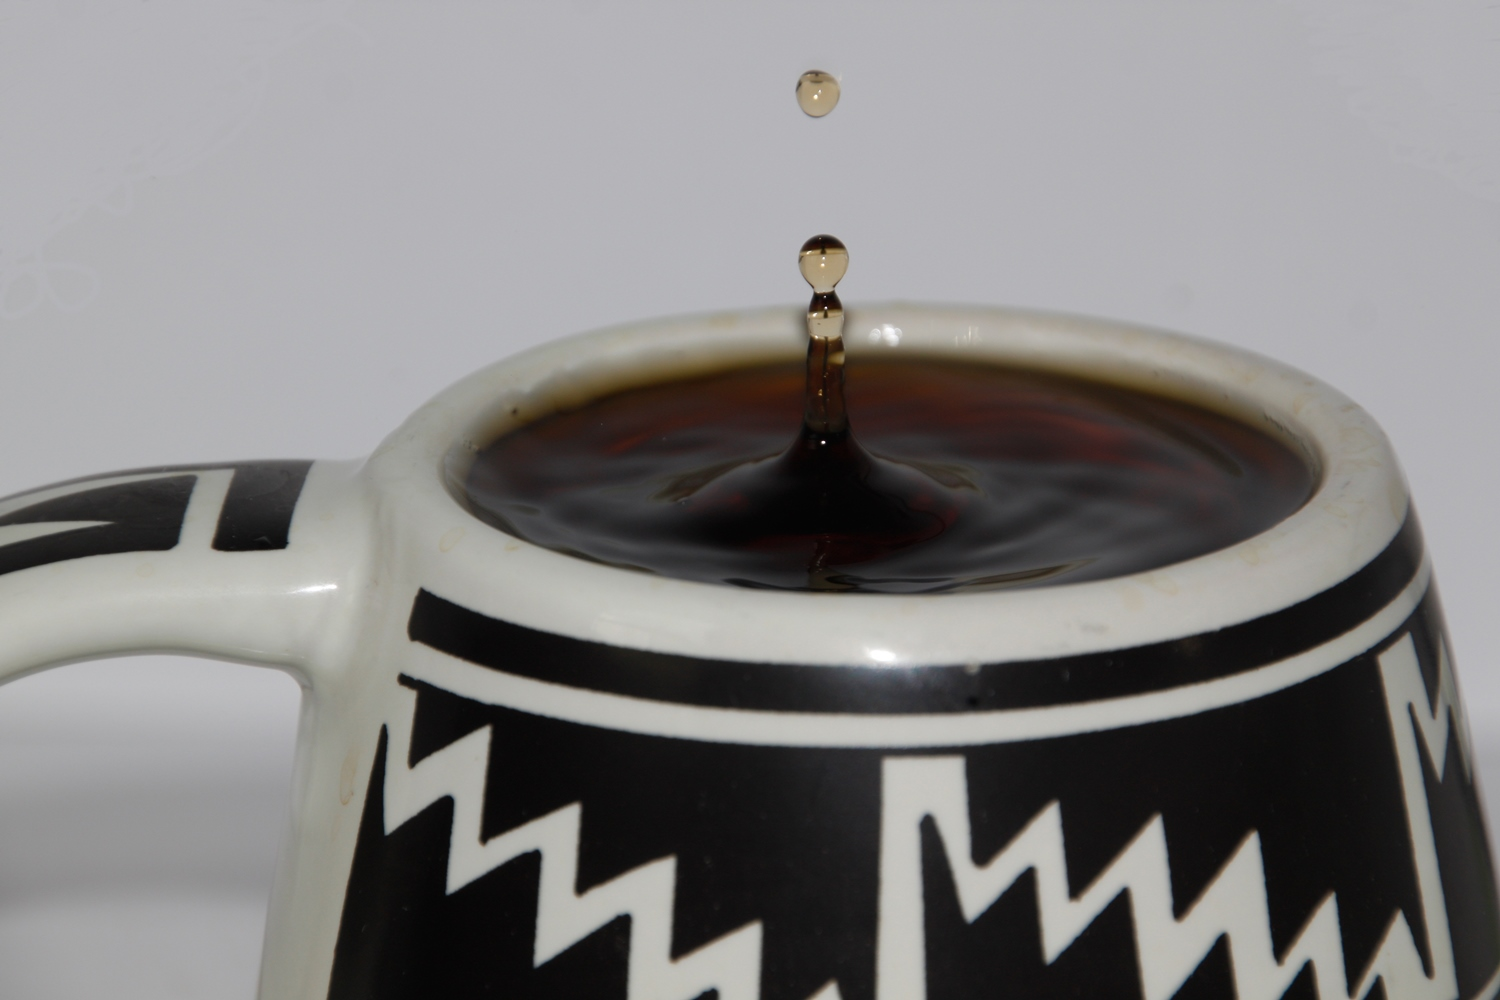 Coffee drip photography